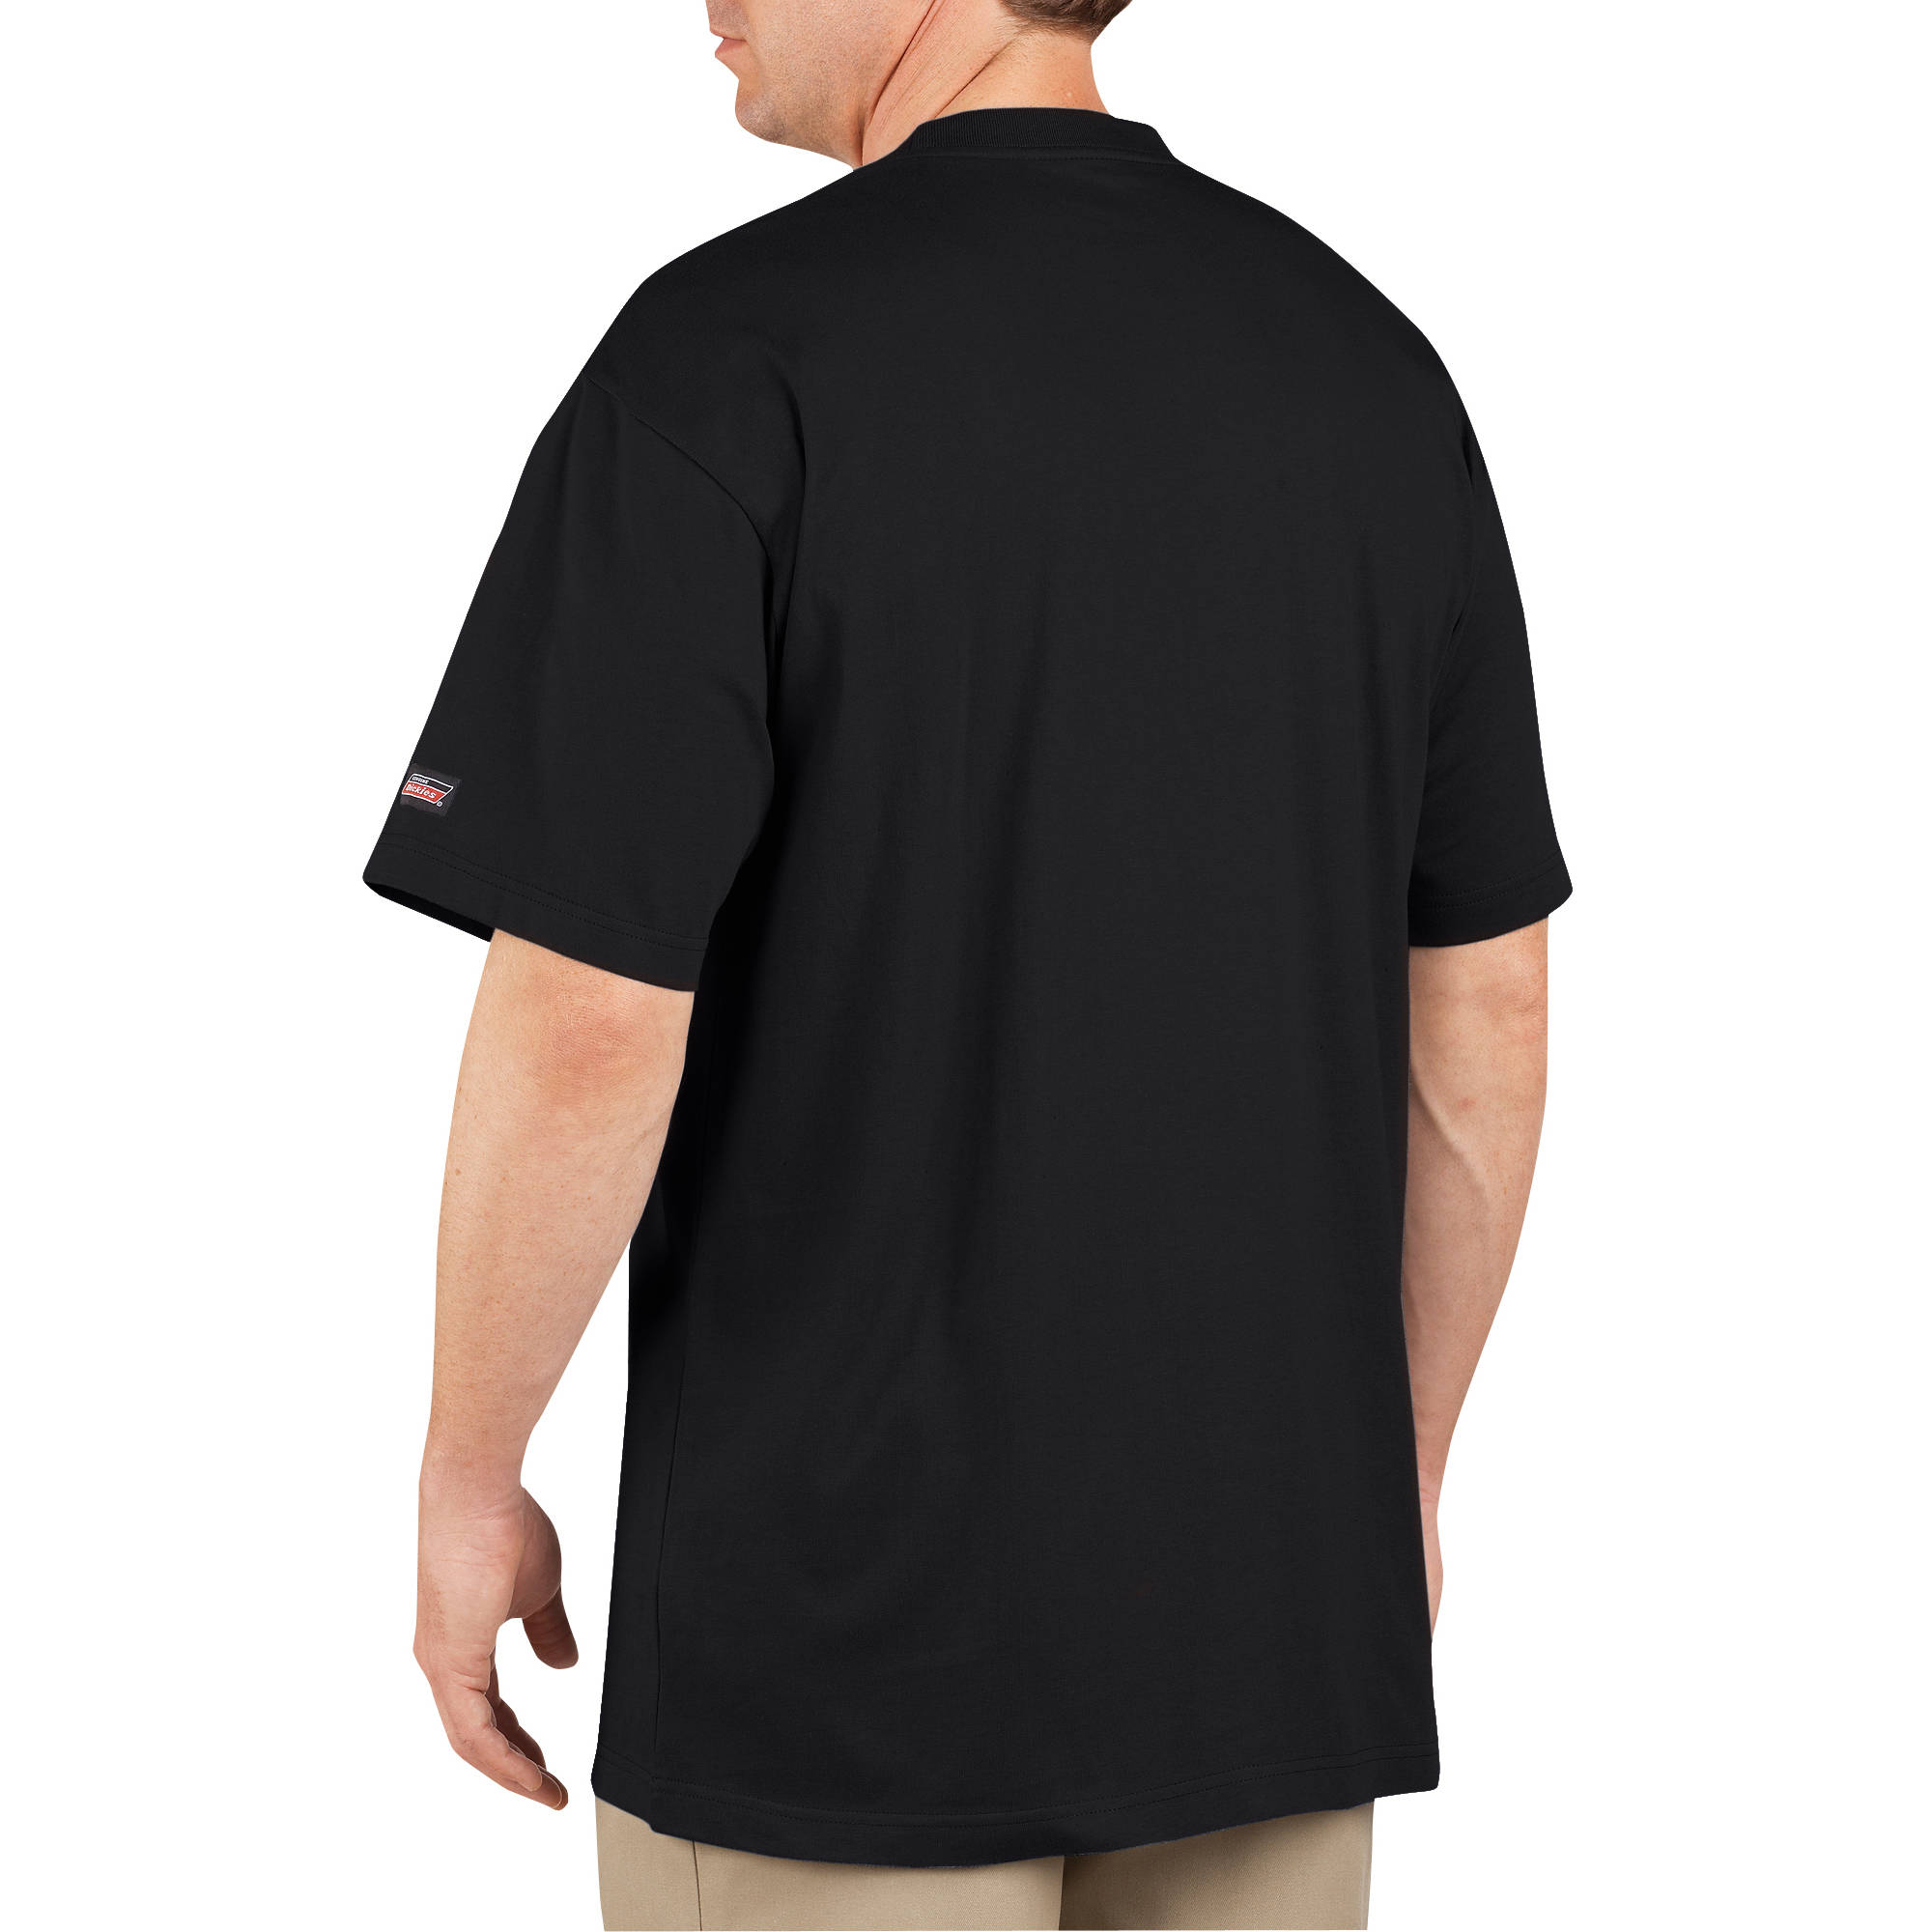 Black t shirt with pocket - Genuine Dickies 407 Heavy Weight Short Sleeve Pocket Tees 2 Pack Walmart Com